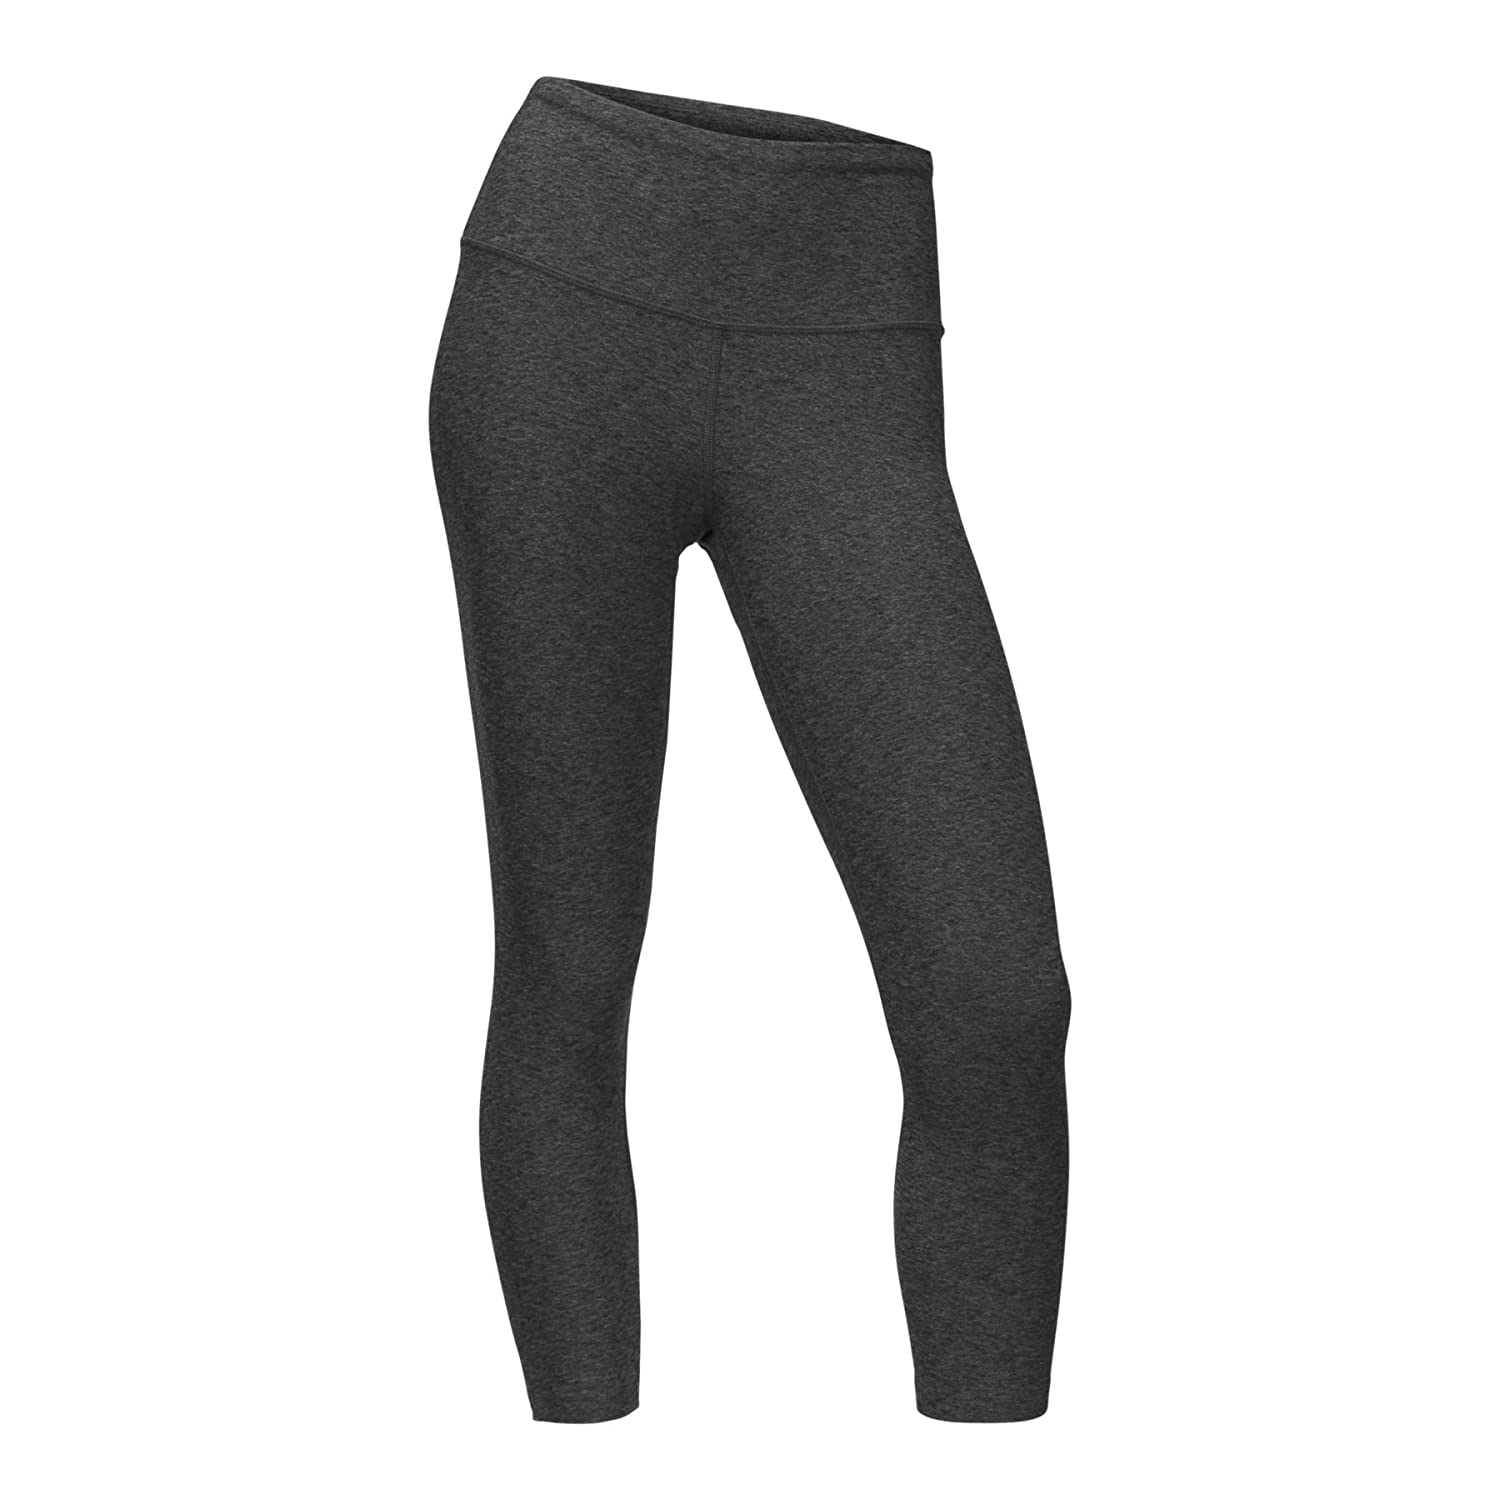 04859fe6f054f The North Face Women's Motivation High-Rise Crop Pants at Amazon Women's  Clothing store: